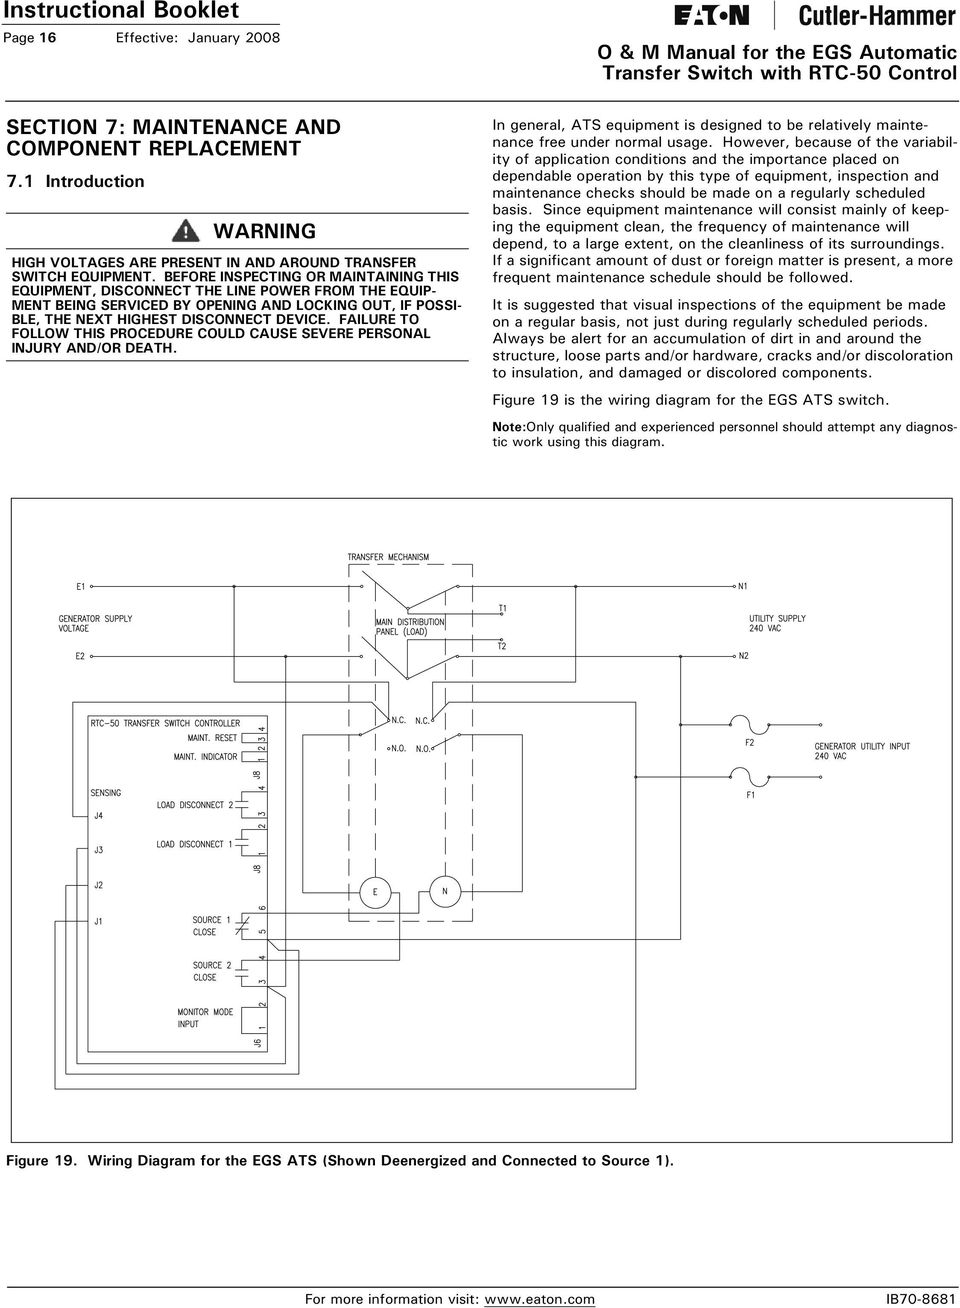 O M Manual For The Egs Automatic Transfer Switch With Rtc 50 Control Wiring Diagram Ats Failure To Follow This Procedure Could Cause Severe Personal Injury And Or Death